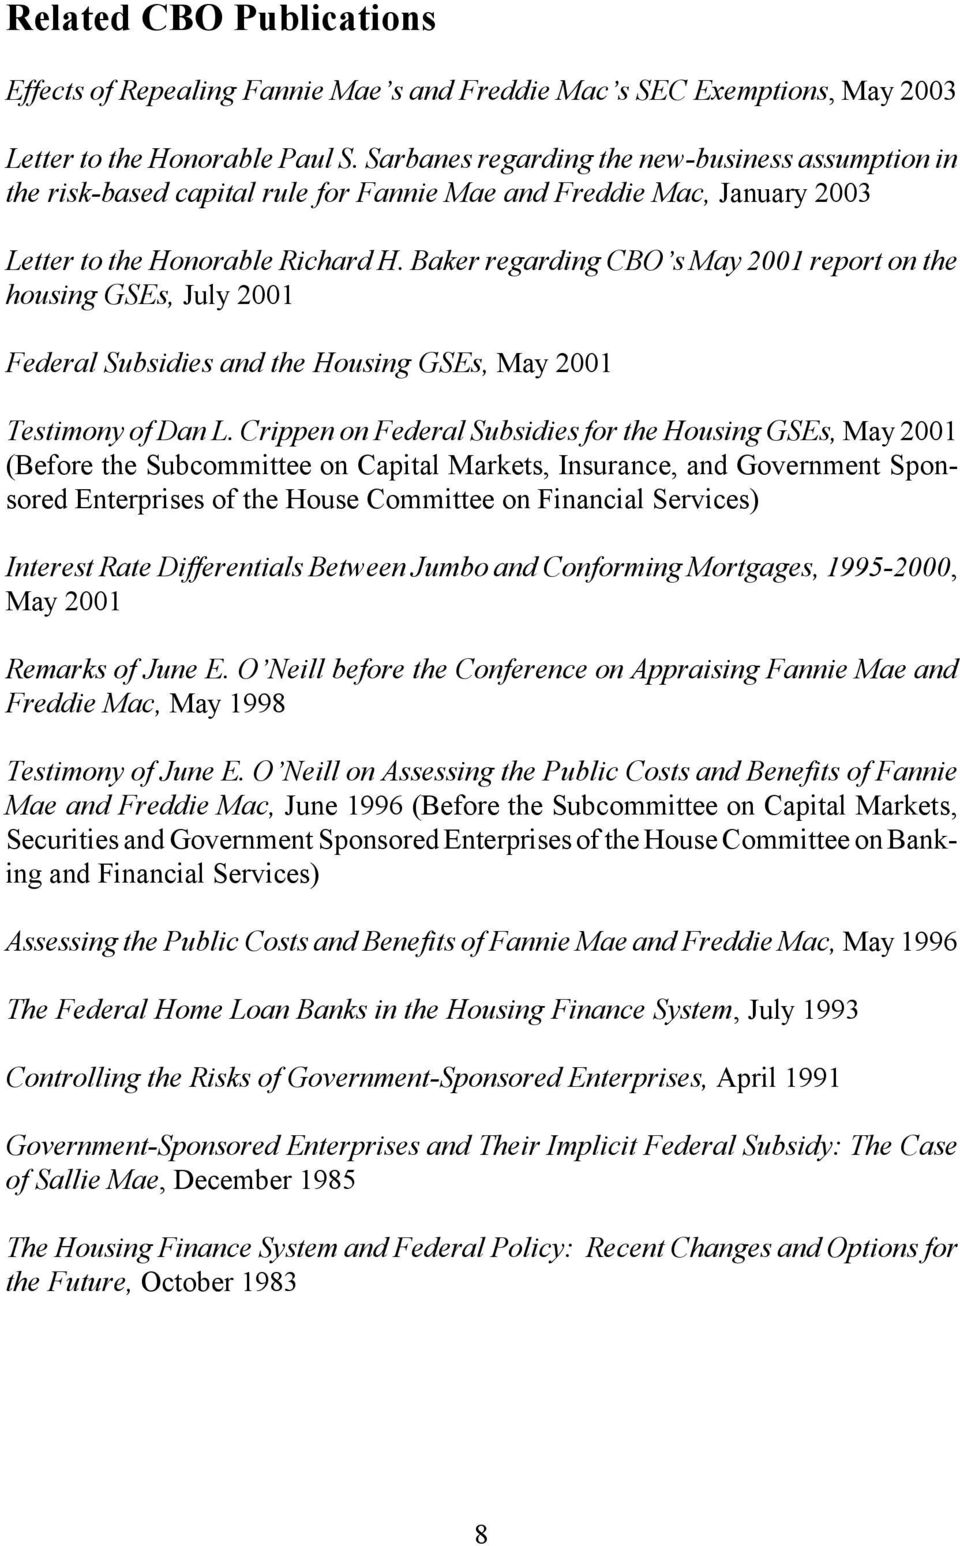 Baker regarding CBO s May 2001 report on the housing GSEs, July 2001 Federal Subsidies and the Housing GSEs, May 2001 Testimony of Dan L.